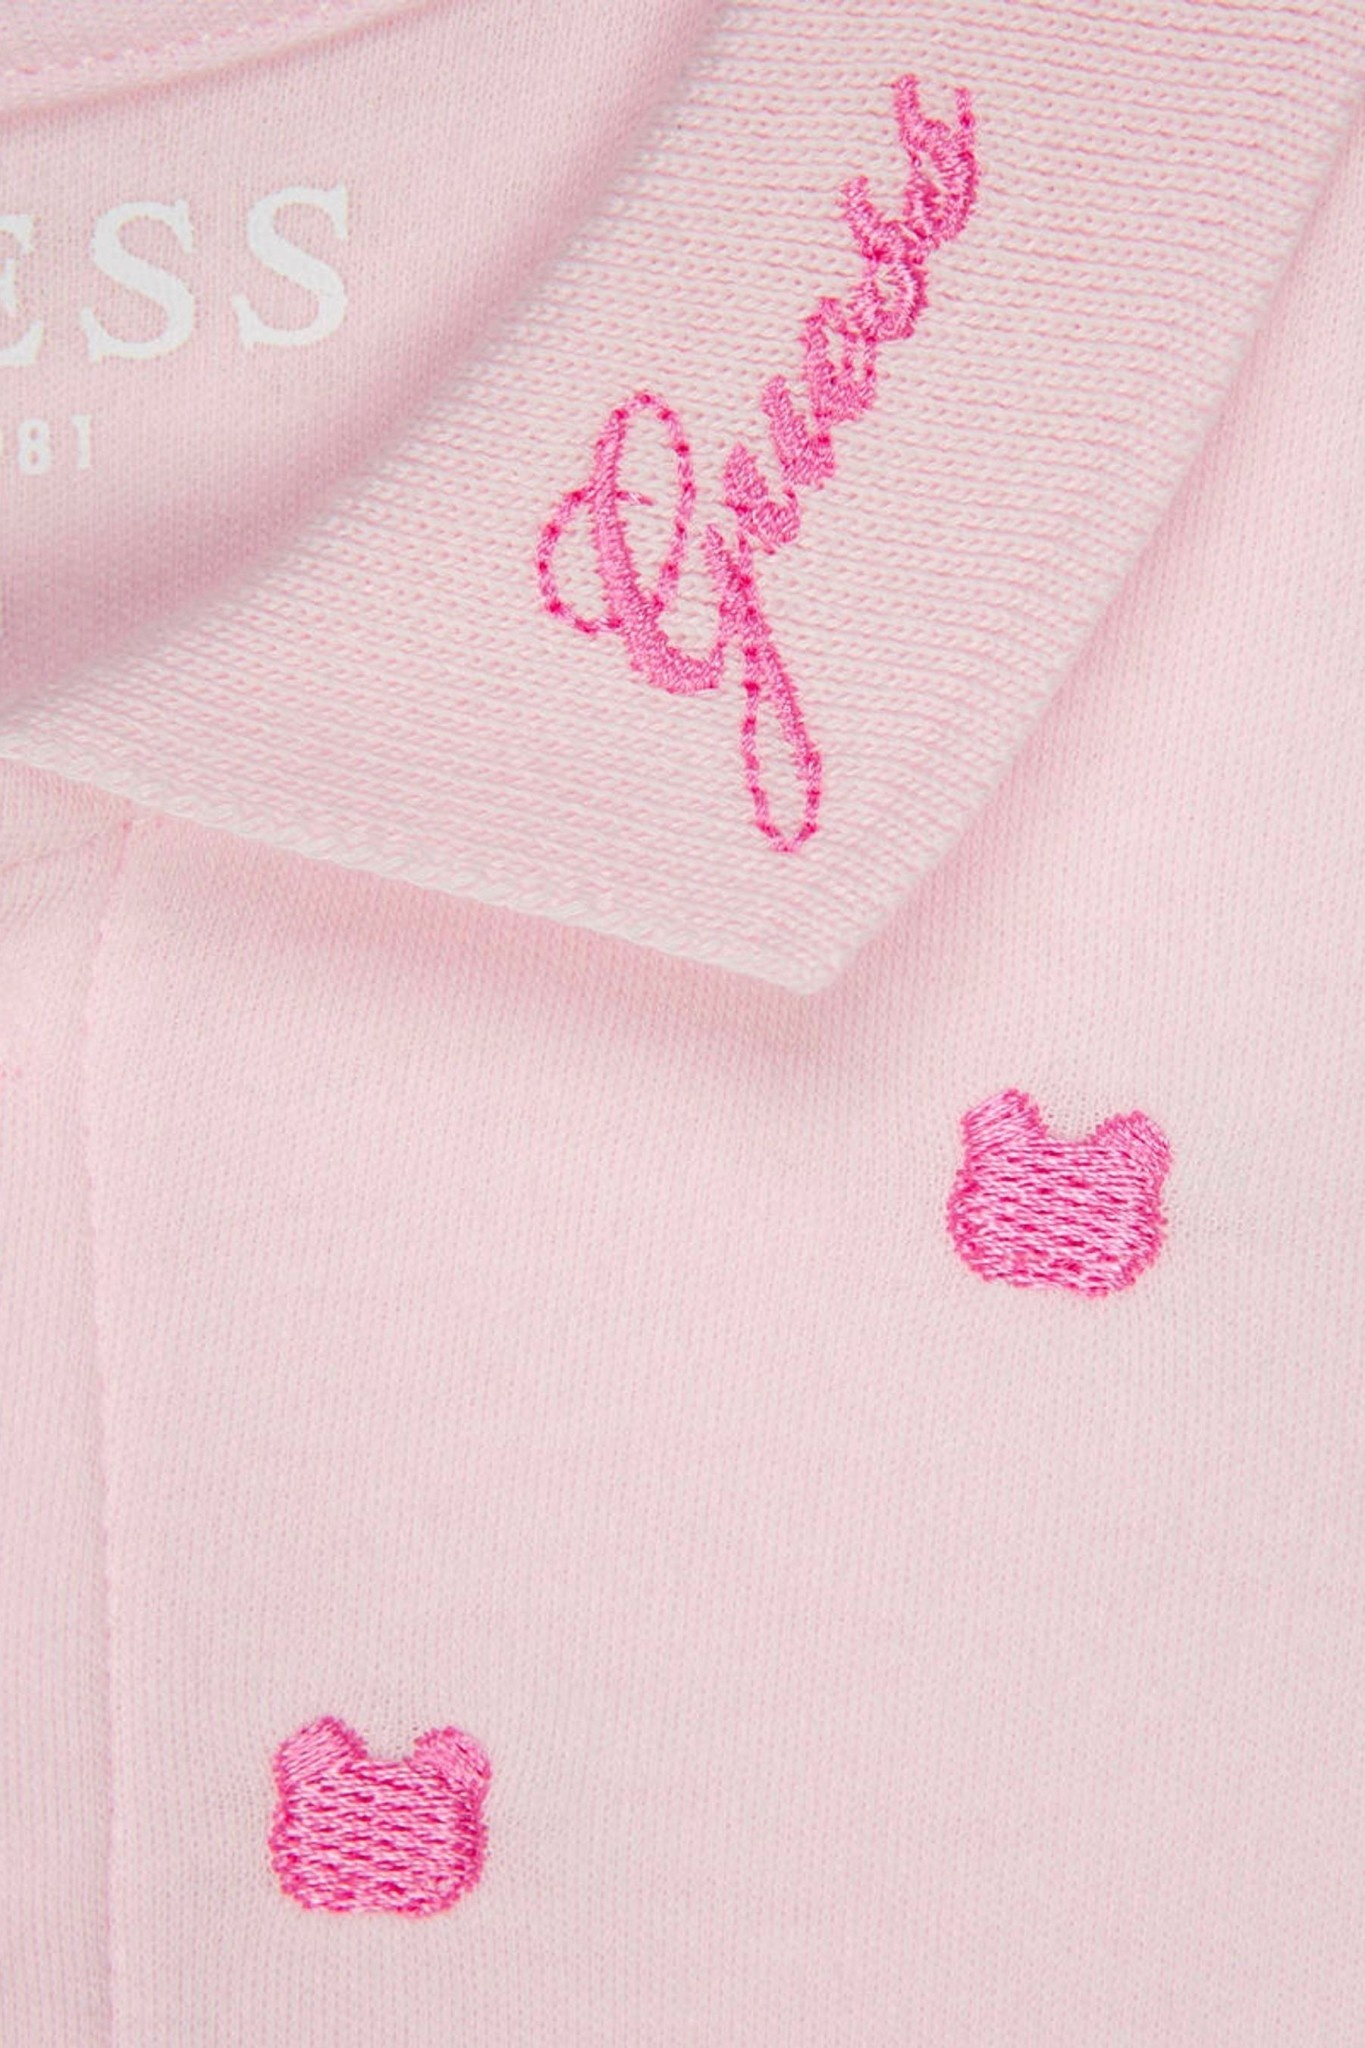 Guess GUESS Baby Girls Pink Cotton Bodysuit Dress S21